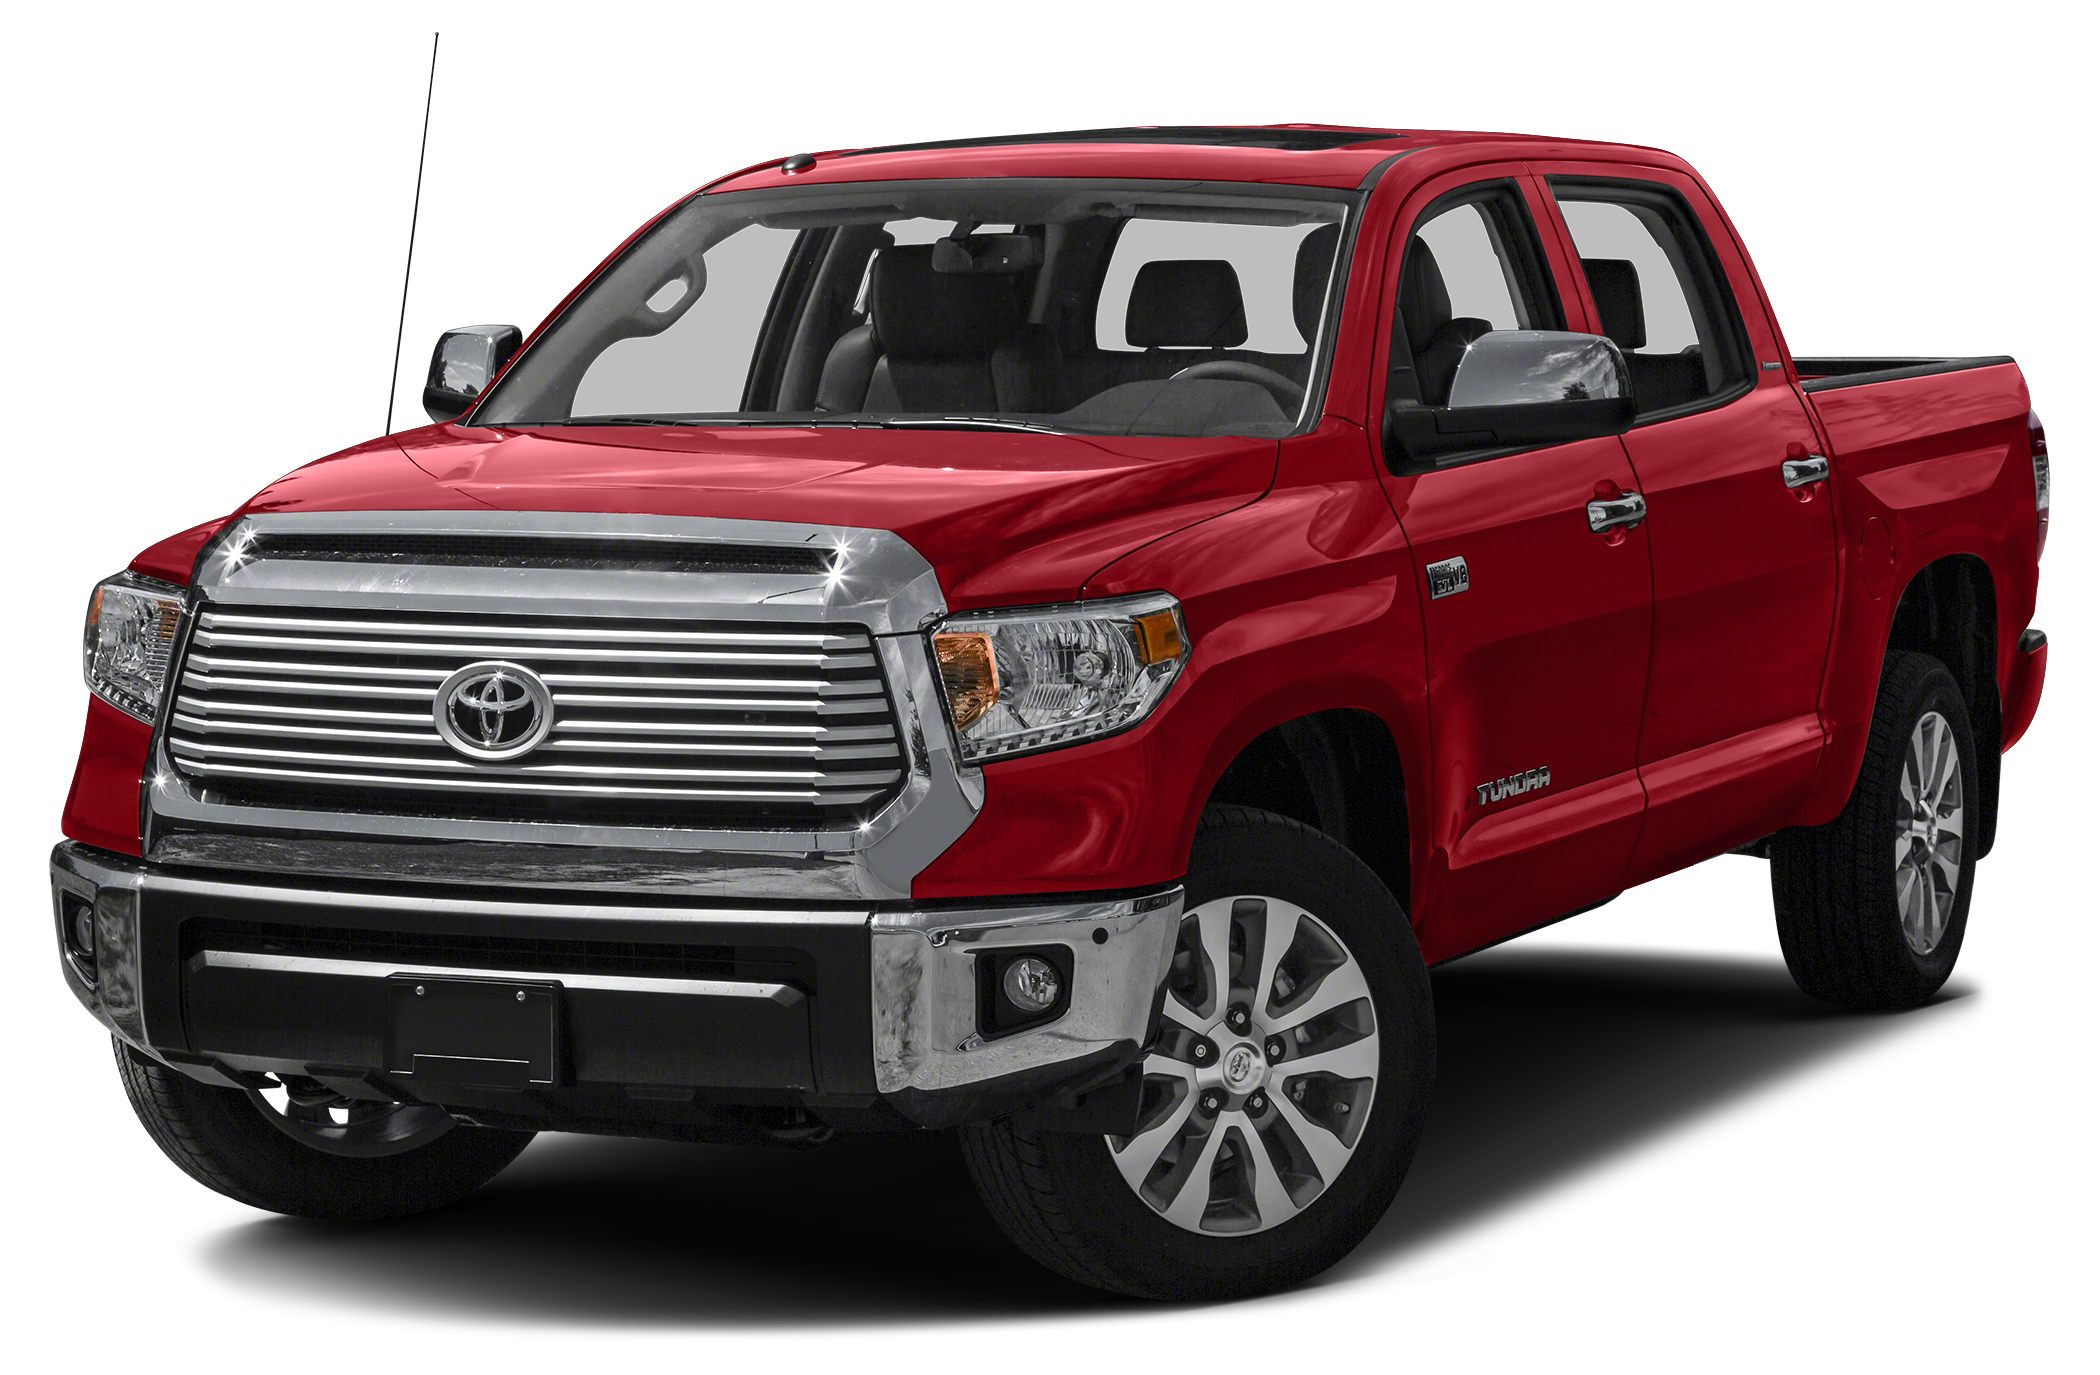 2016 Toyota Tundra Limited Miles 0Color Barcelona Red Metallic Stock 68334 VIN 5TFHW5F16GX56